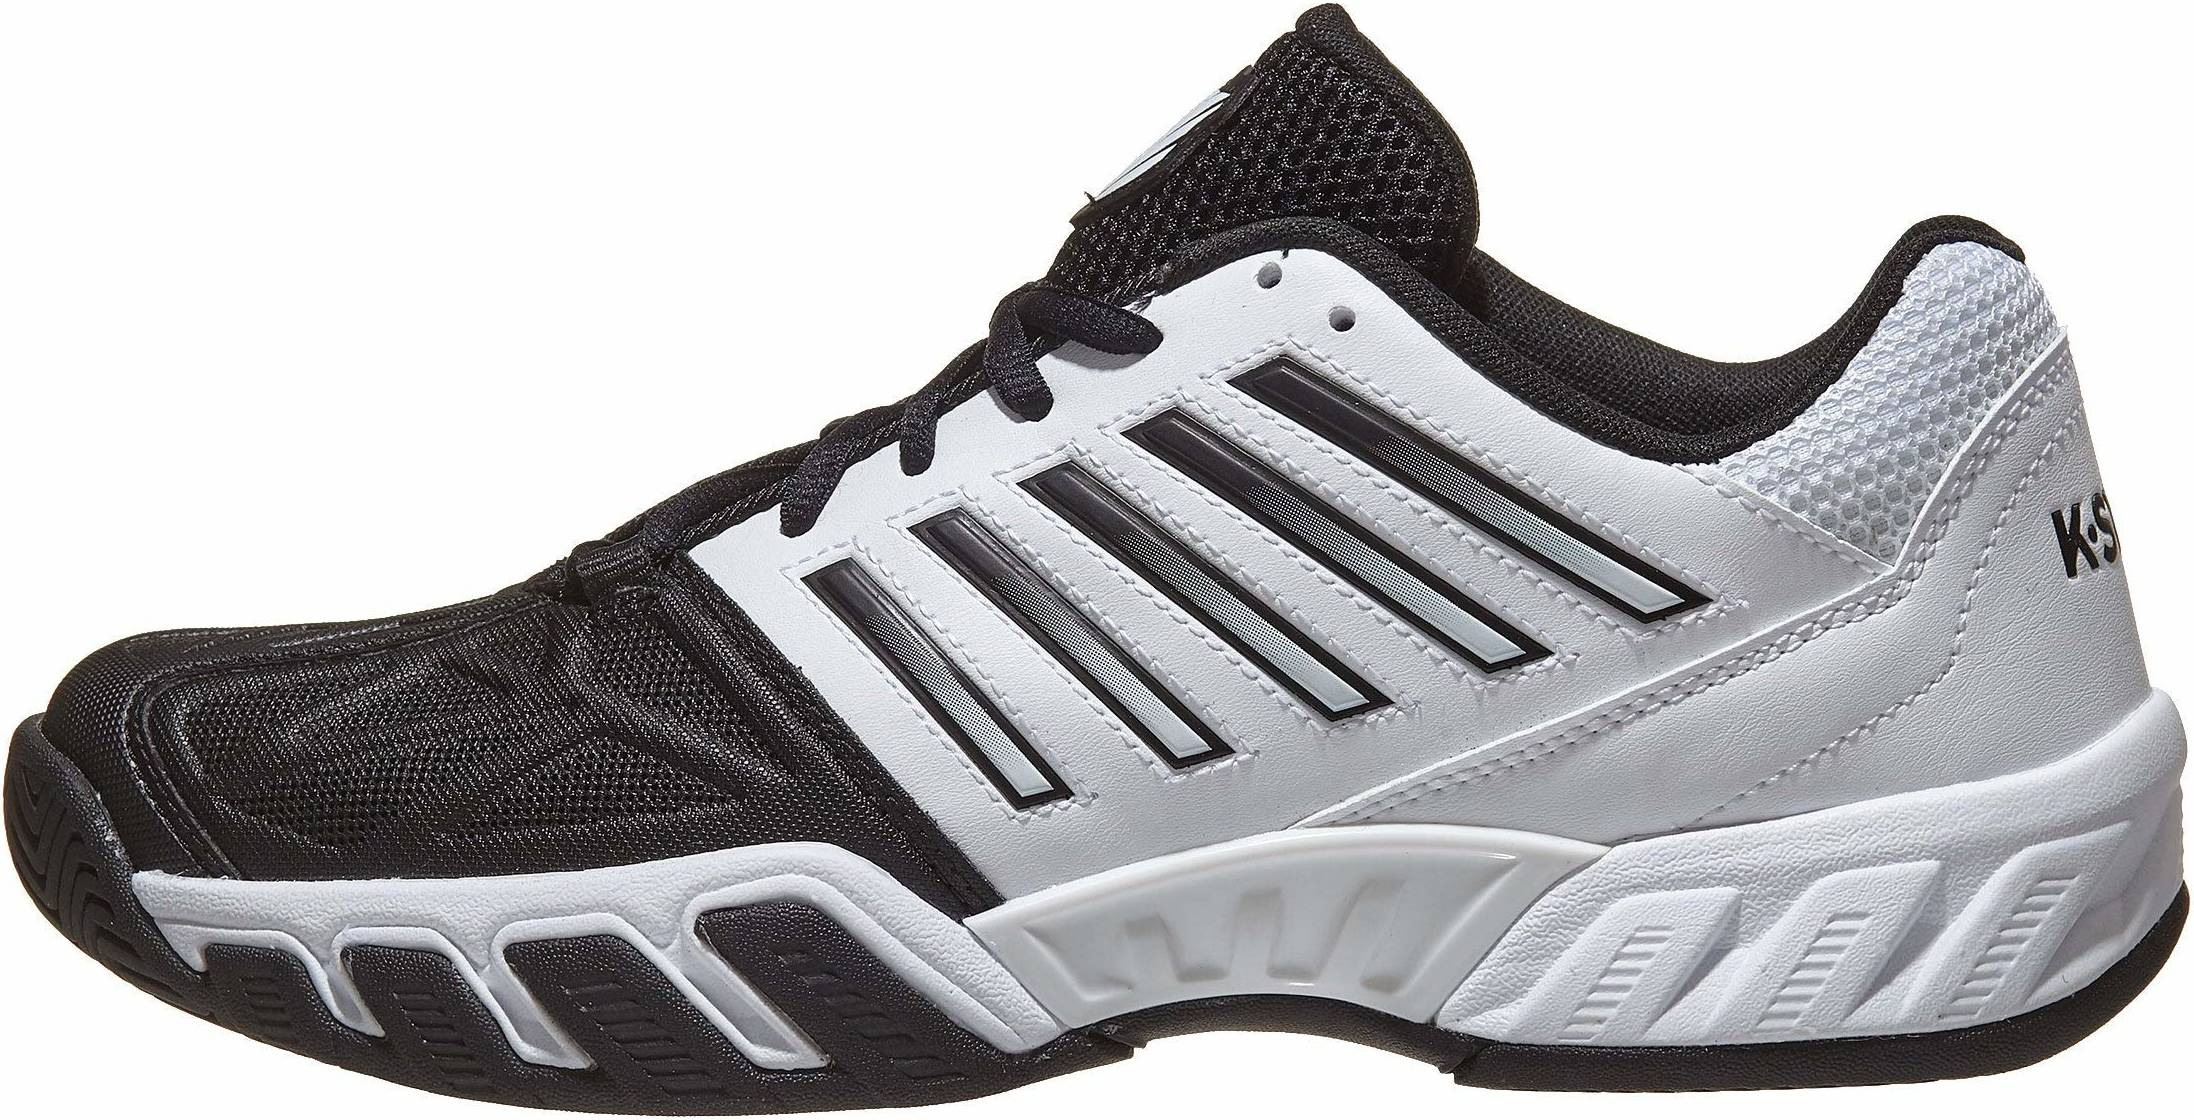 K Swiss Bigshot Light 3 Deals 75 Facts Reviews 2021 Runrepeat